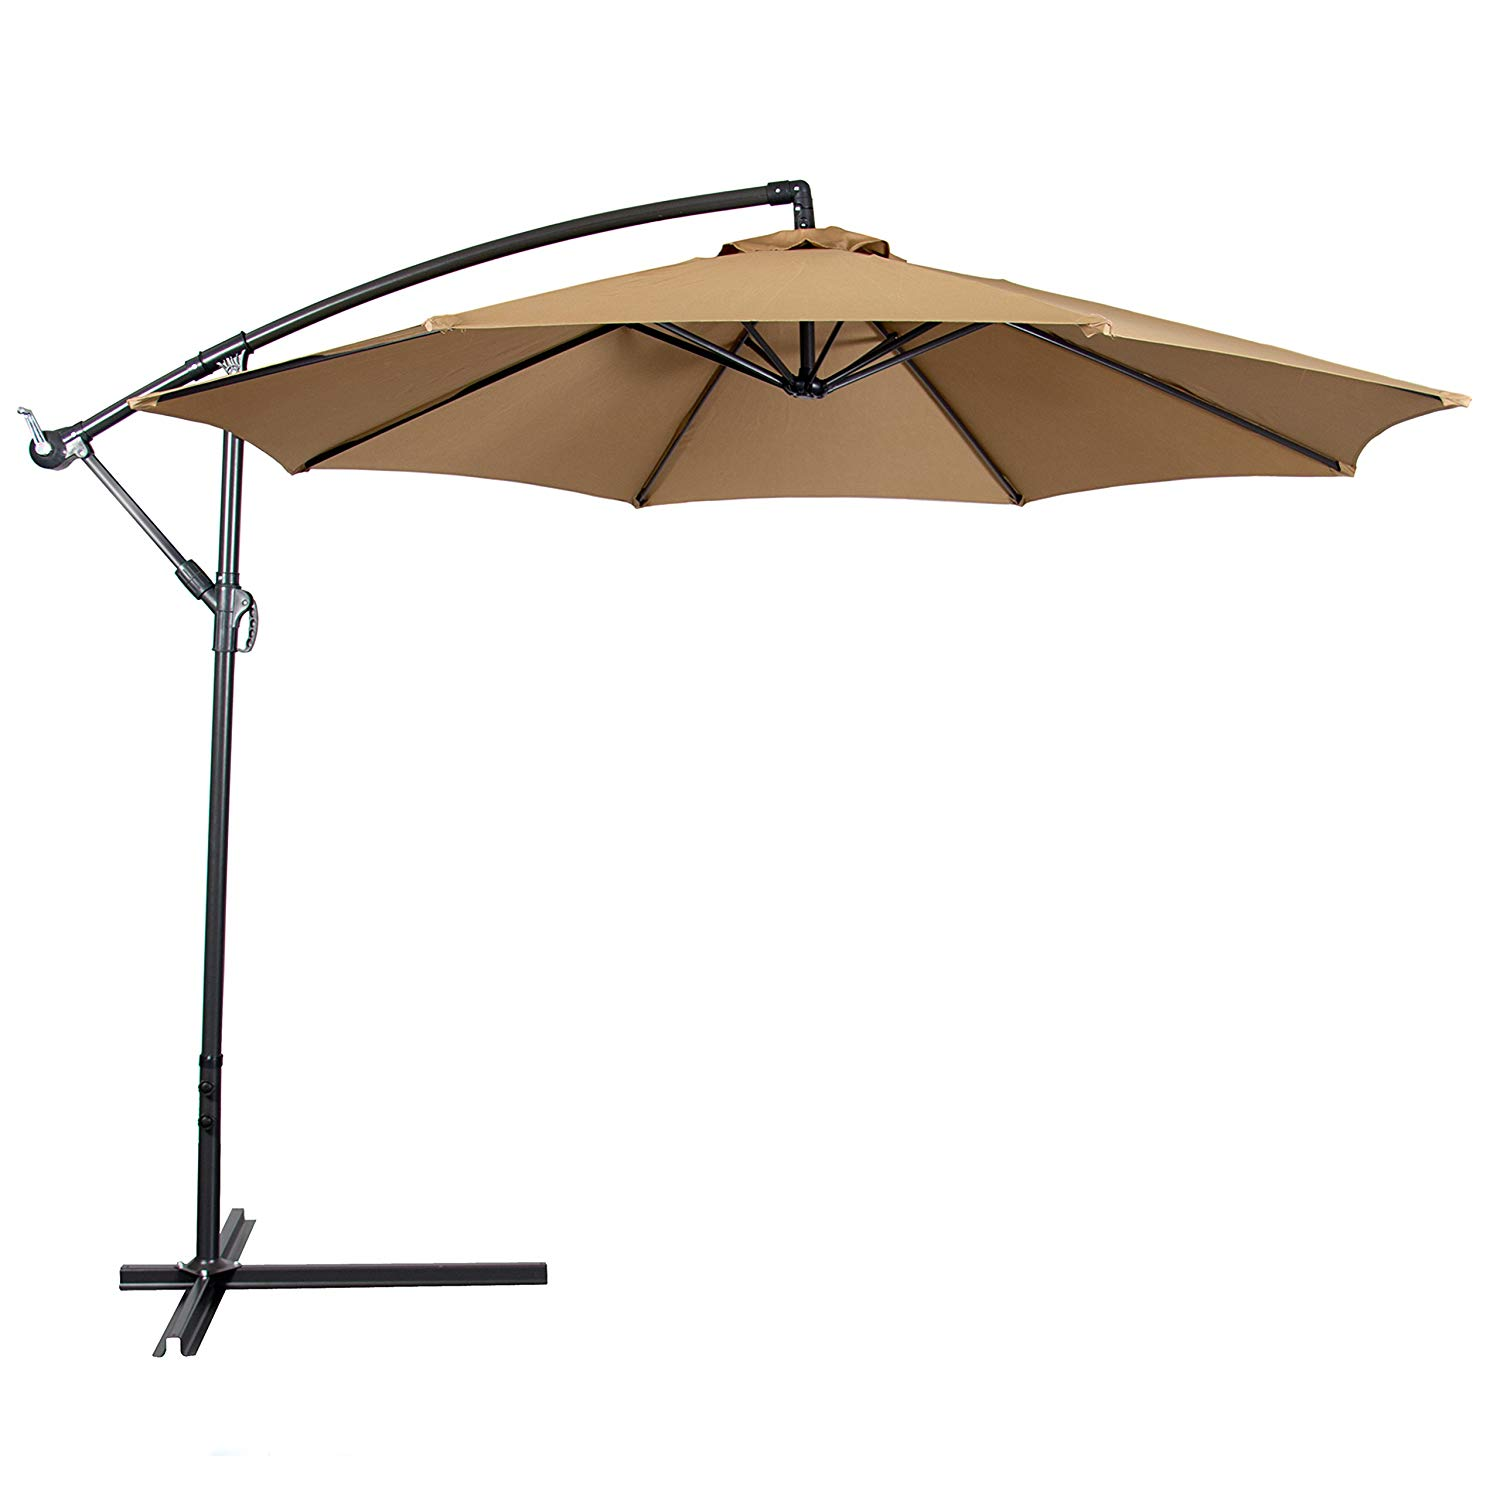 outdoor umbrella amazon.com : best choice products patio umbrella offset 10u0027 hanging umbrella AJITXYK